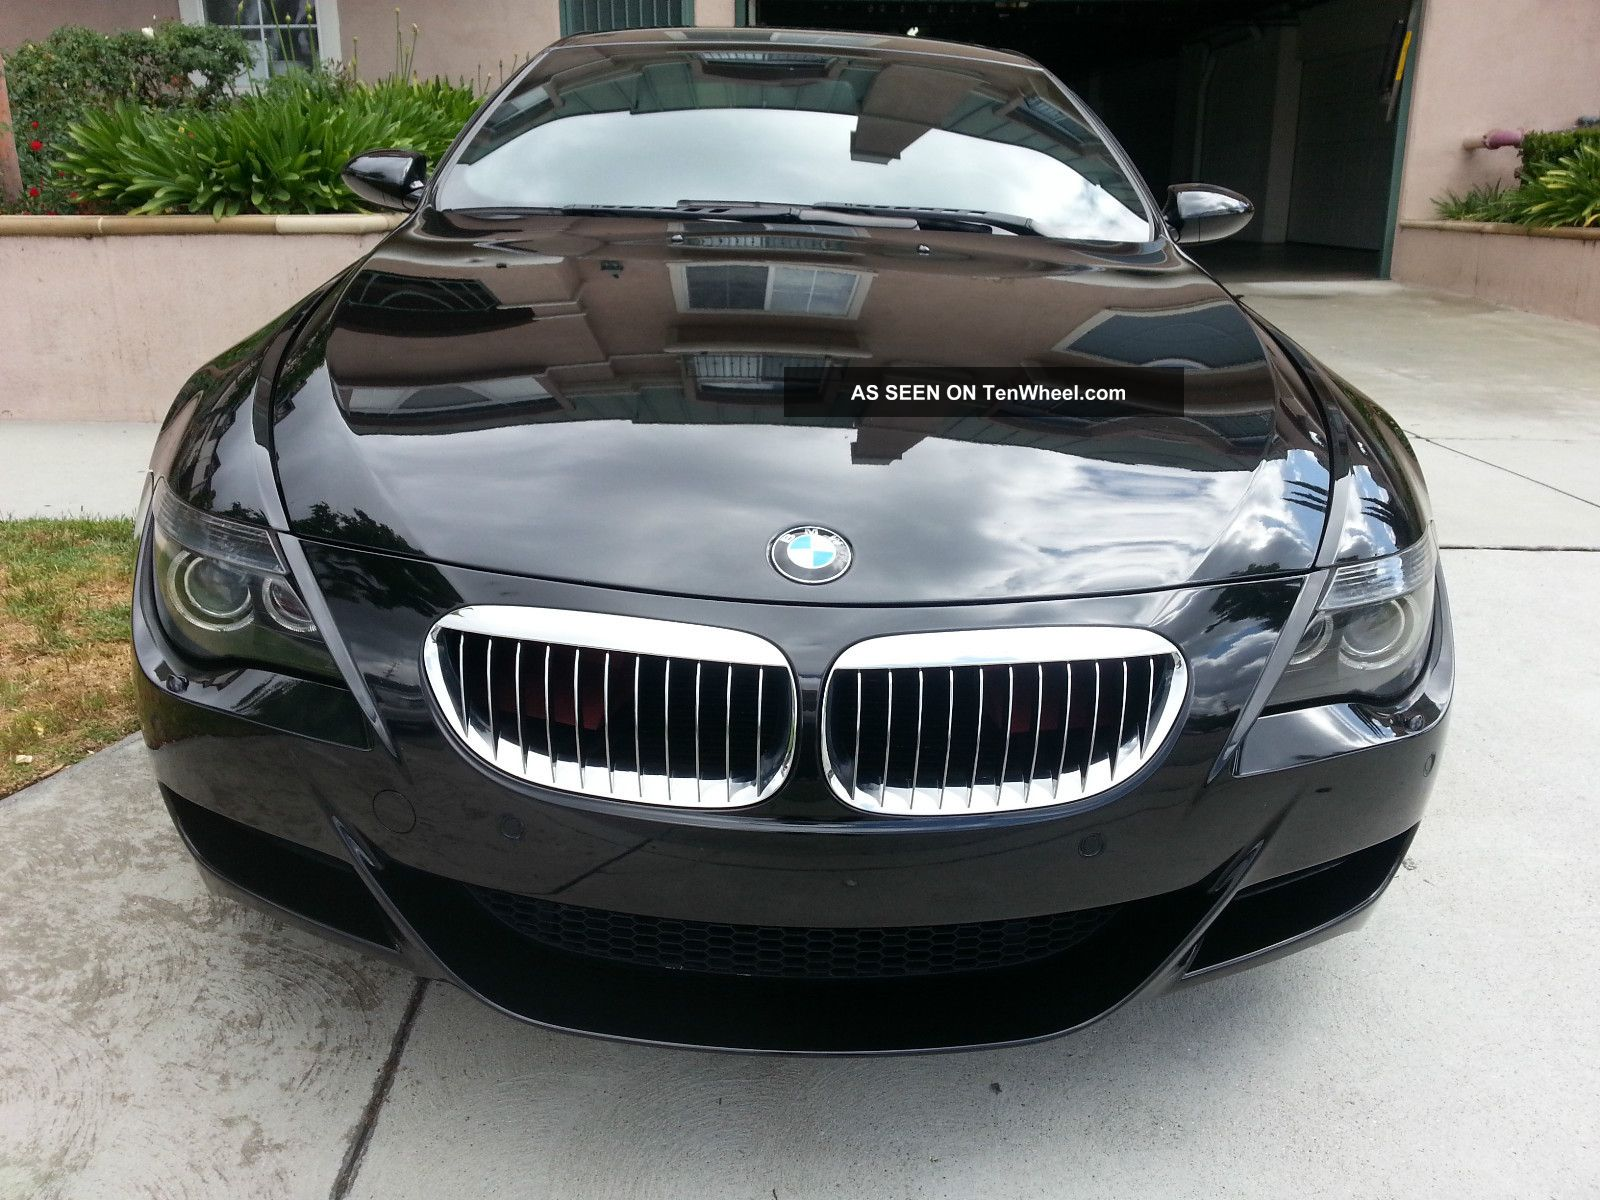 Bmw M6 Carbon: 2007 Bmw M6 Coupe. Immaculate. Carbon. Many Upgrades